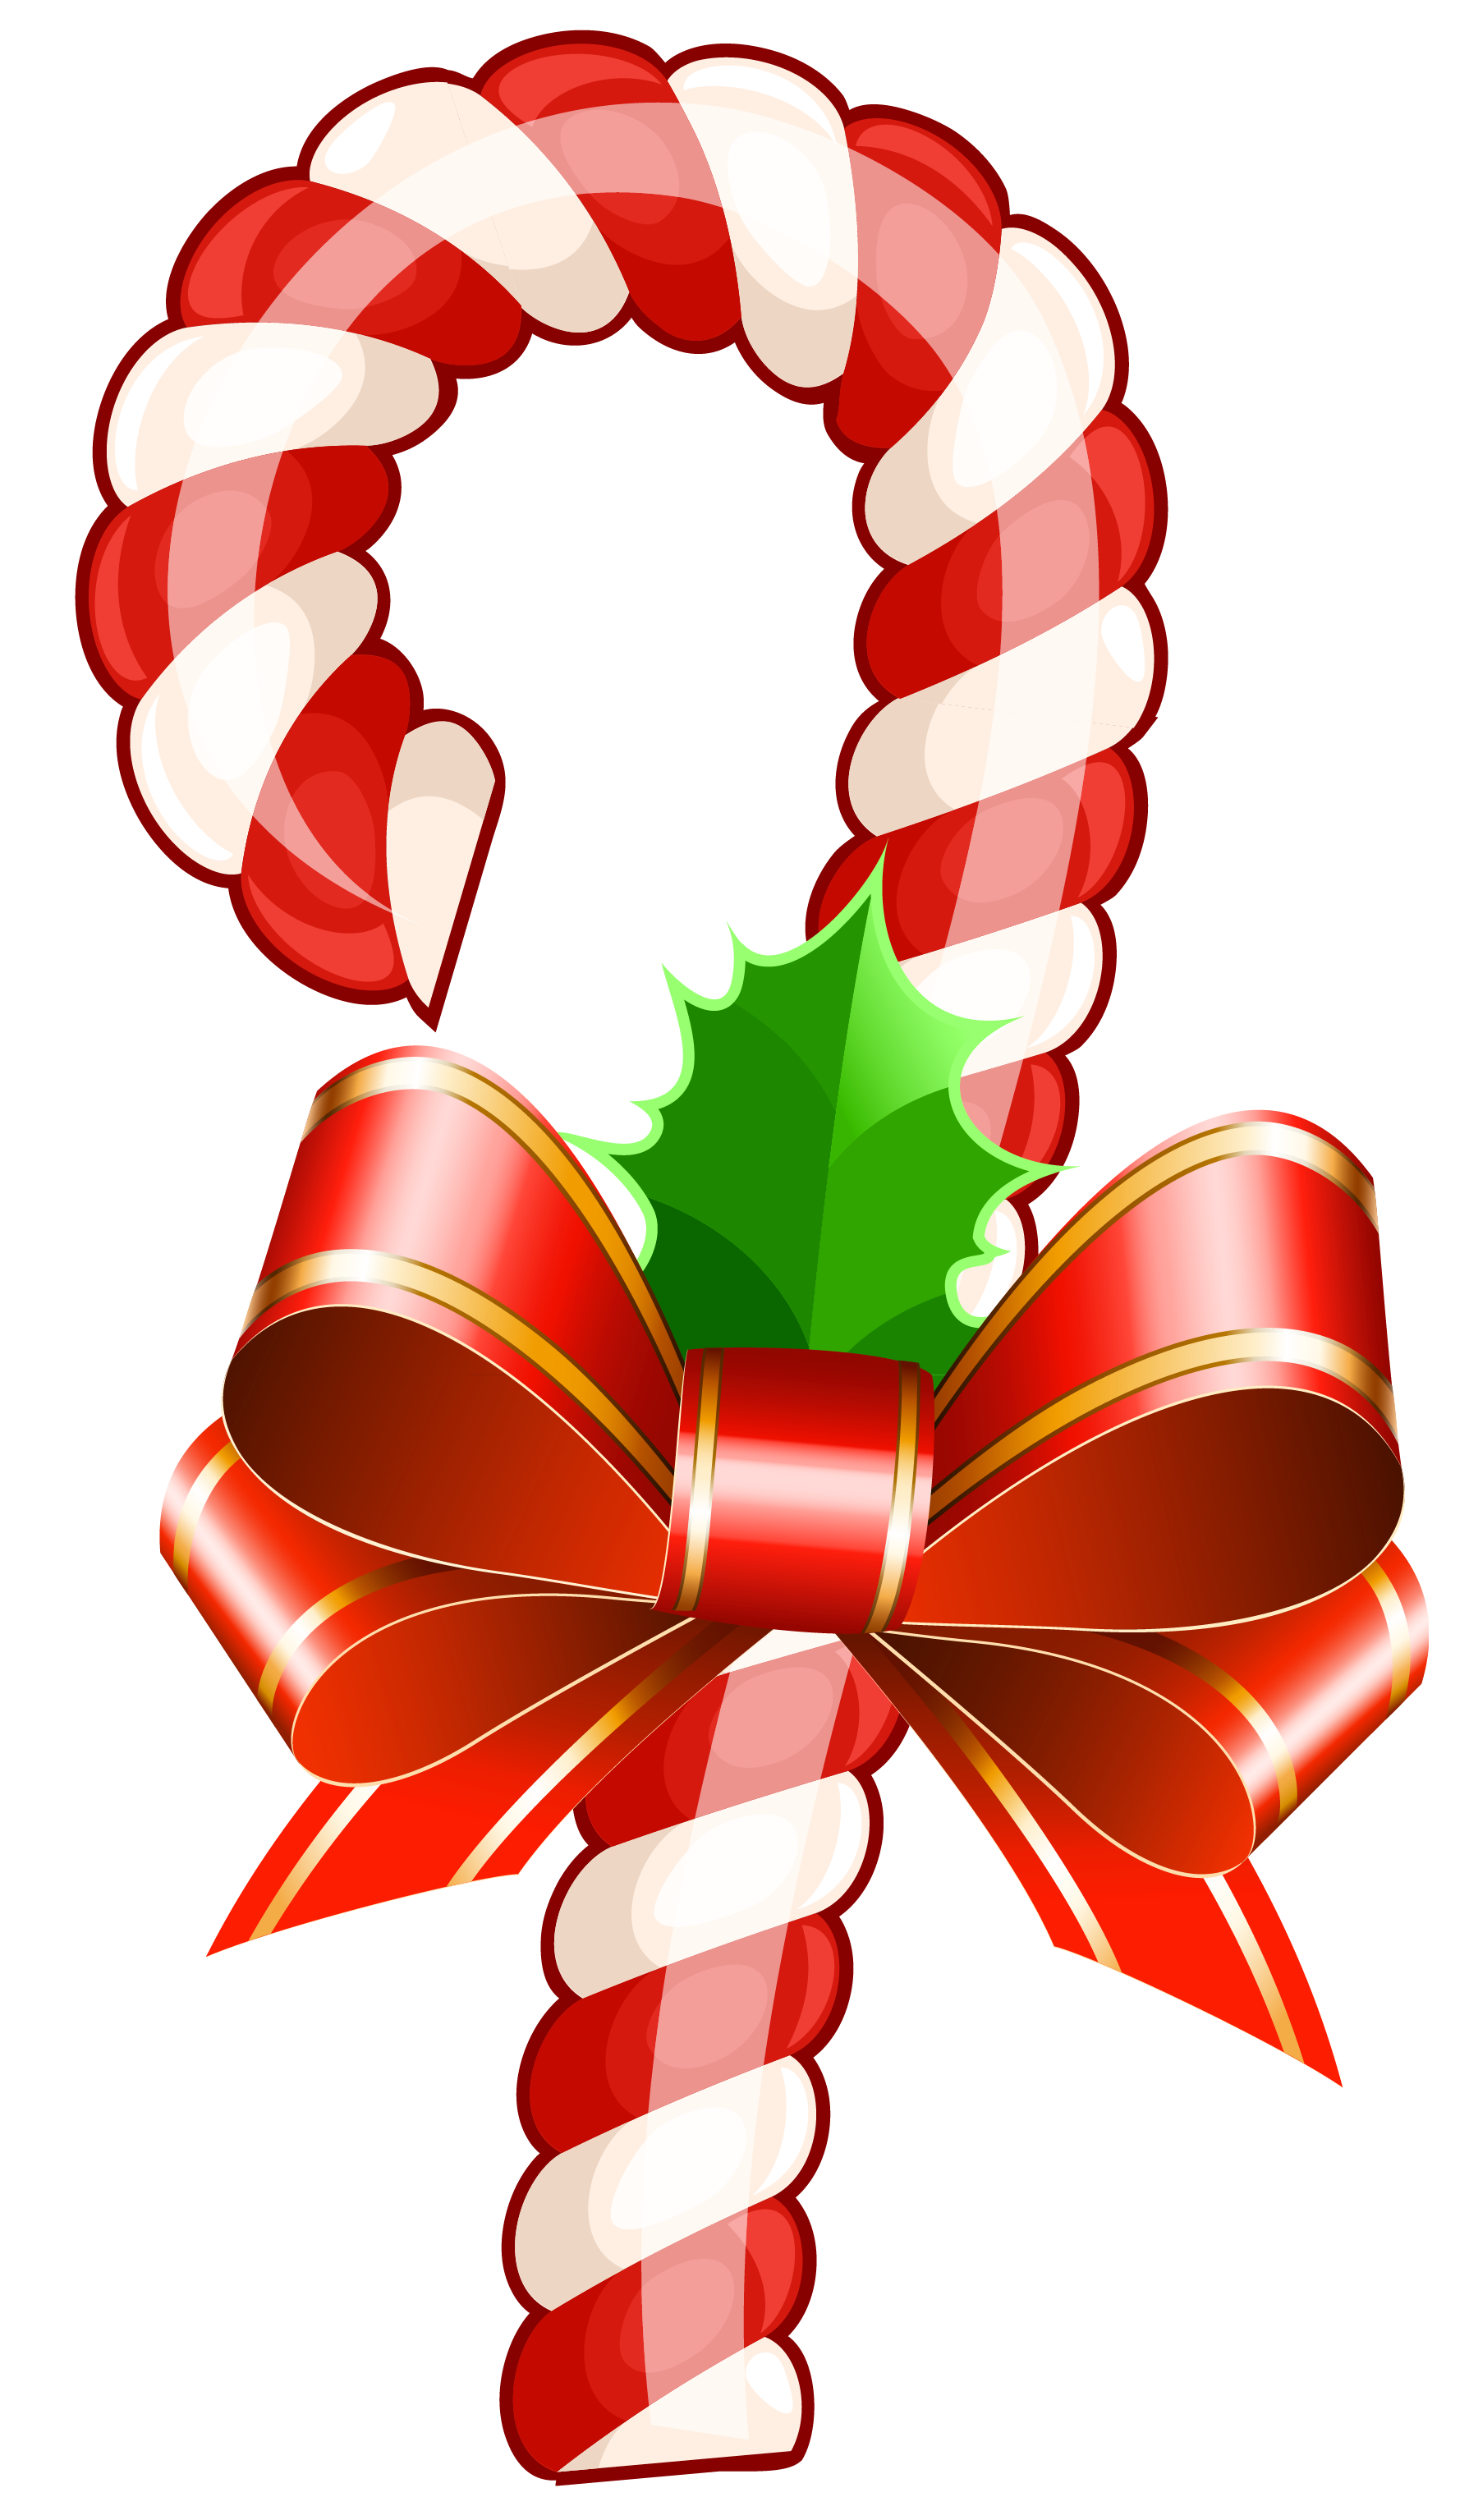 1789x3069 Candy Cane Clip Art Candy Cane Factscandy Cane Facts 3 Image